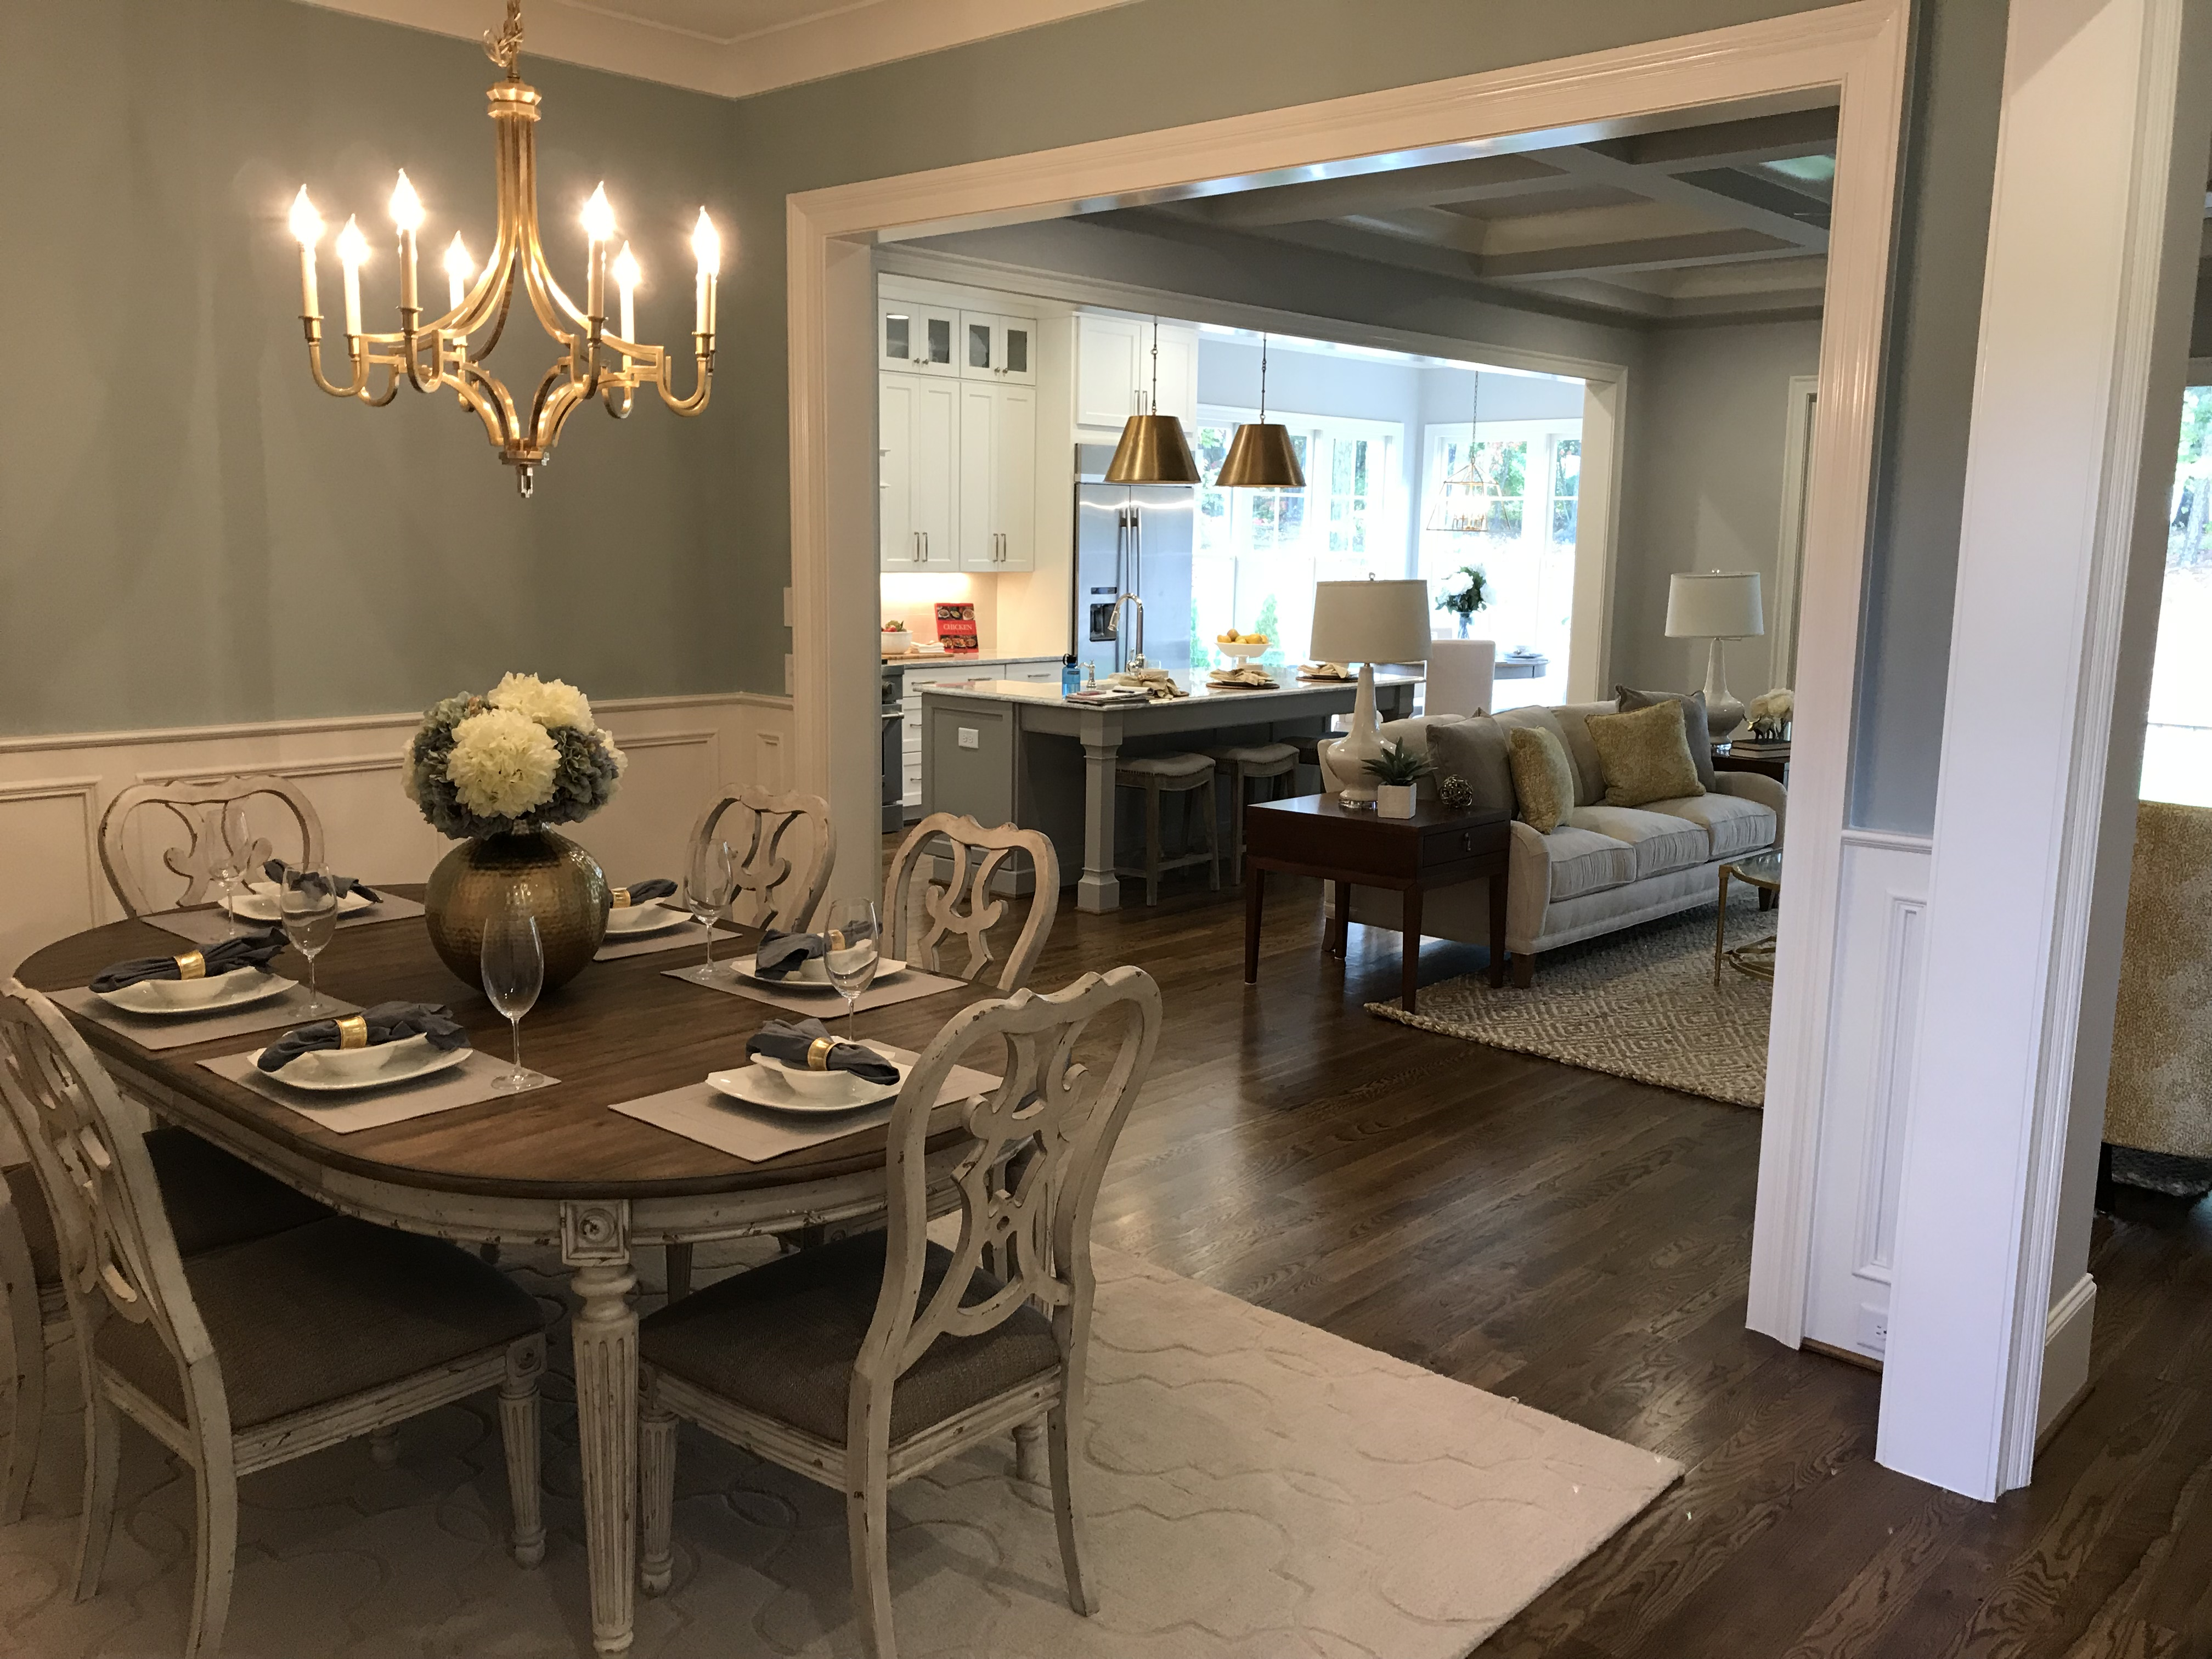 <div class='meta'><div class='origin-logo' data-origin='none'></div><span class='caption-text' data-credit='WTVD photo/Shawn Replogle'>Dining room - 8308 Leyburn Court, Raleigh, NC - $759,000 by Legacy Custom Homes</span></div>